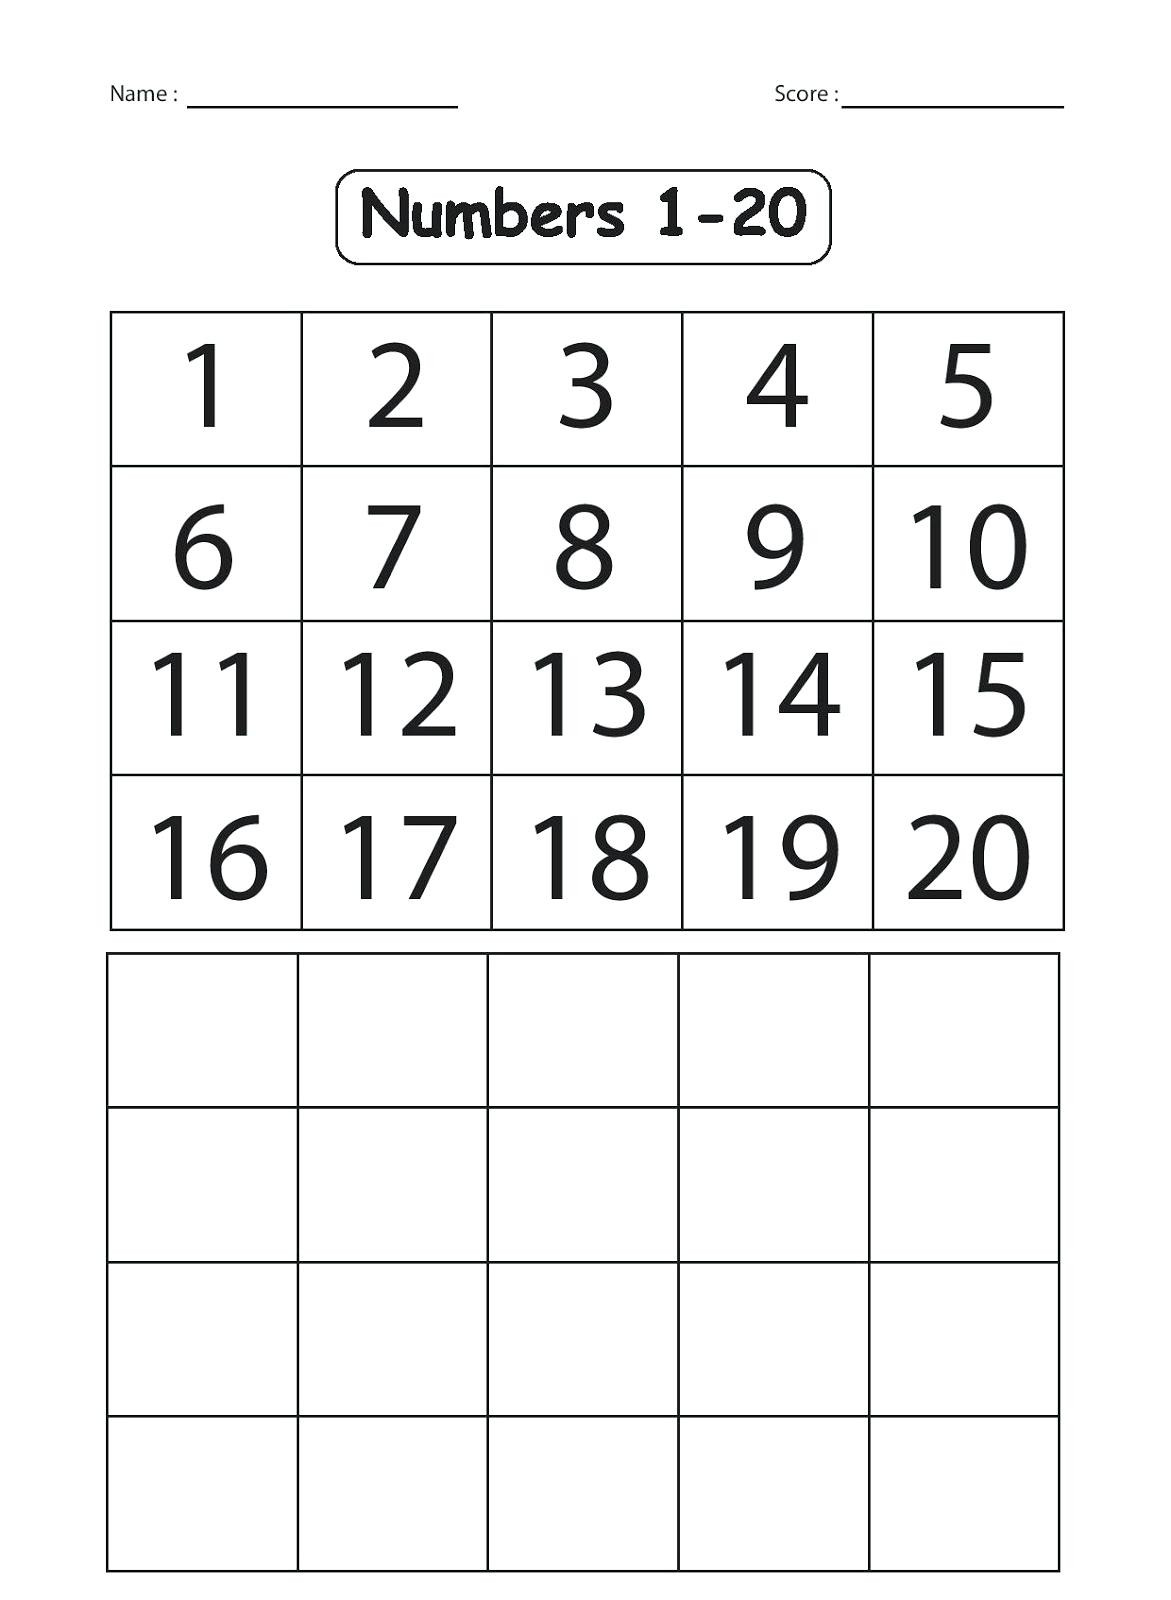 Tracing Numbers 1 20 Printable Number Writing Practice Sheets Number formation Worksheet